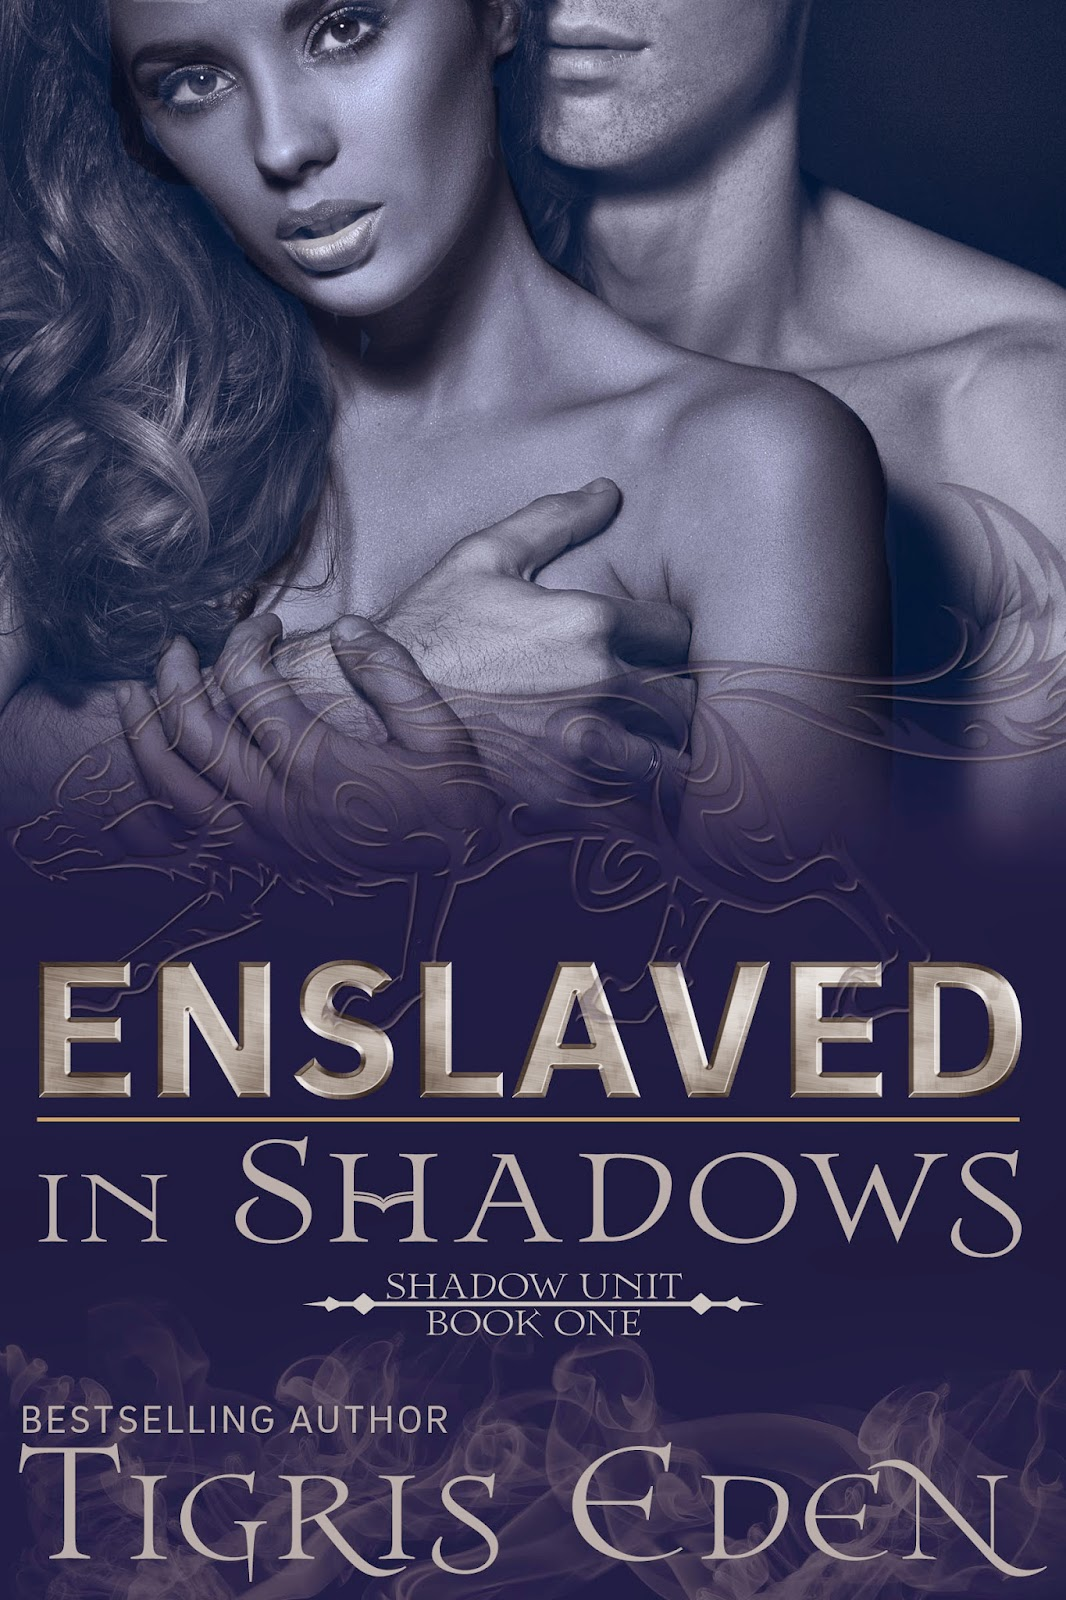 Review – Enslaved in Shadows by Tigris Eden